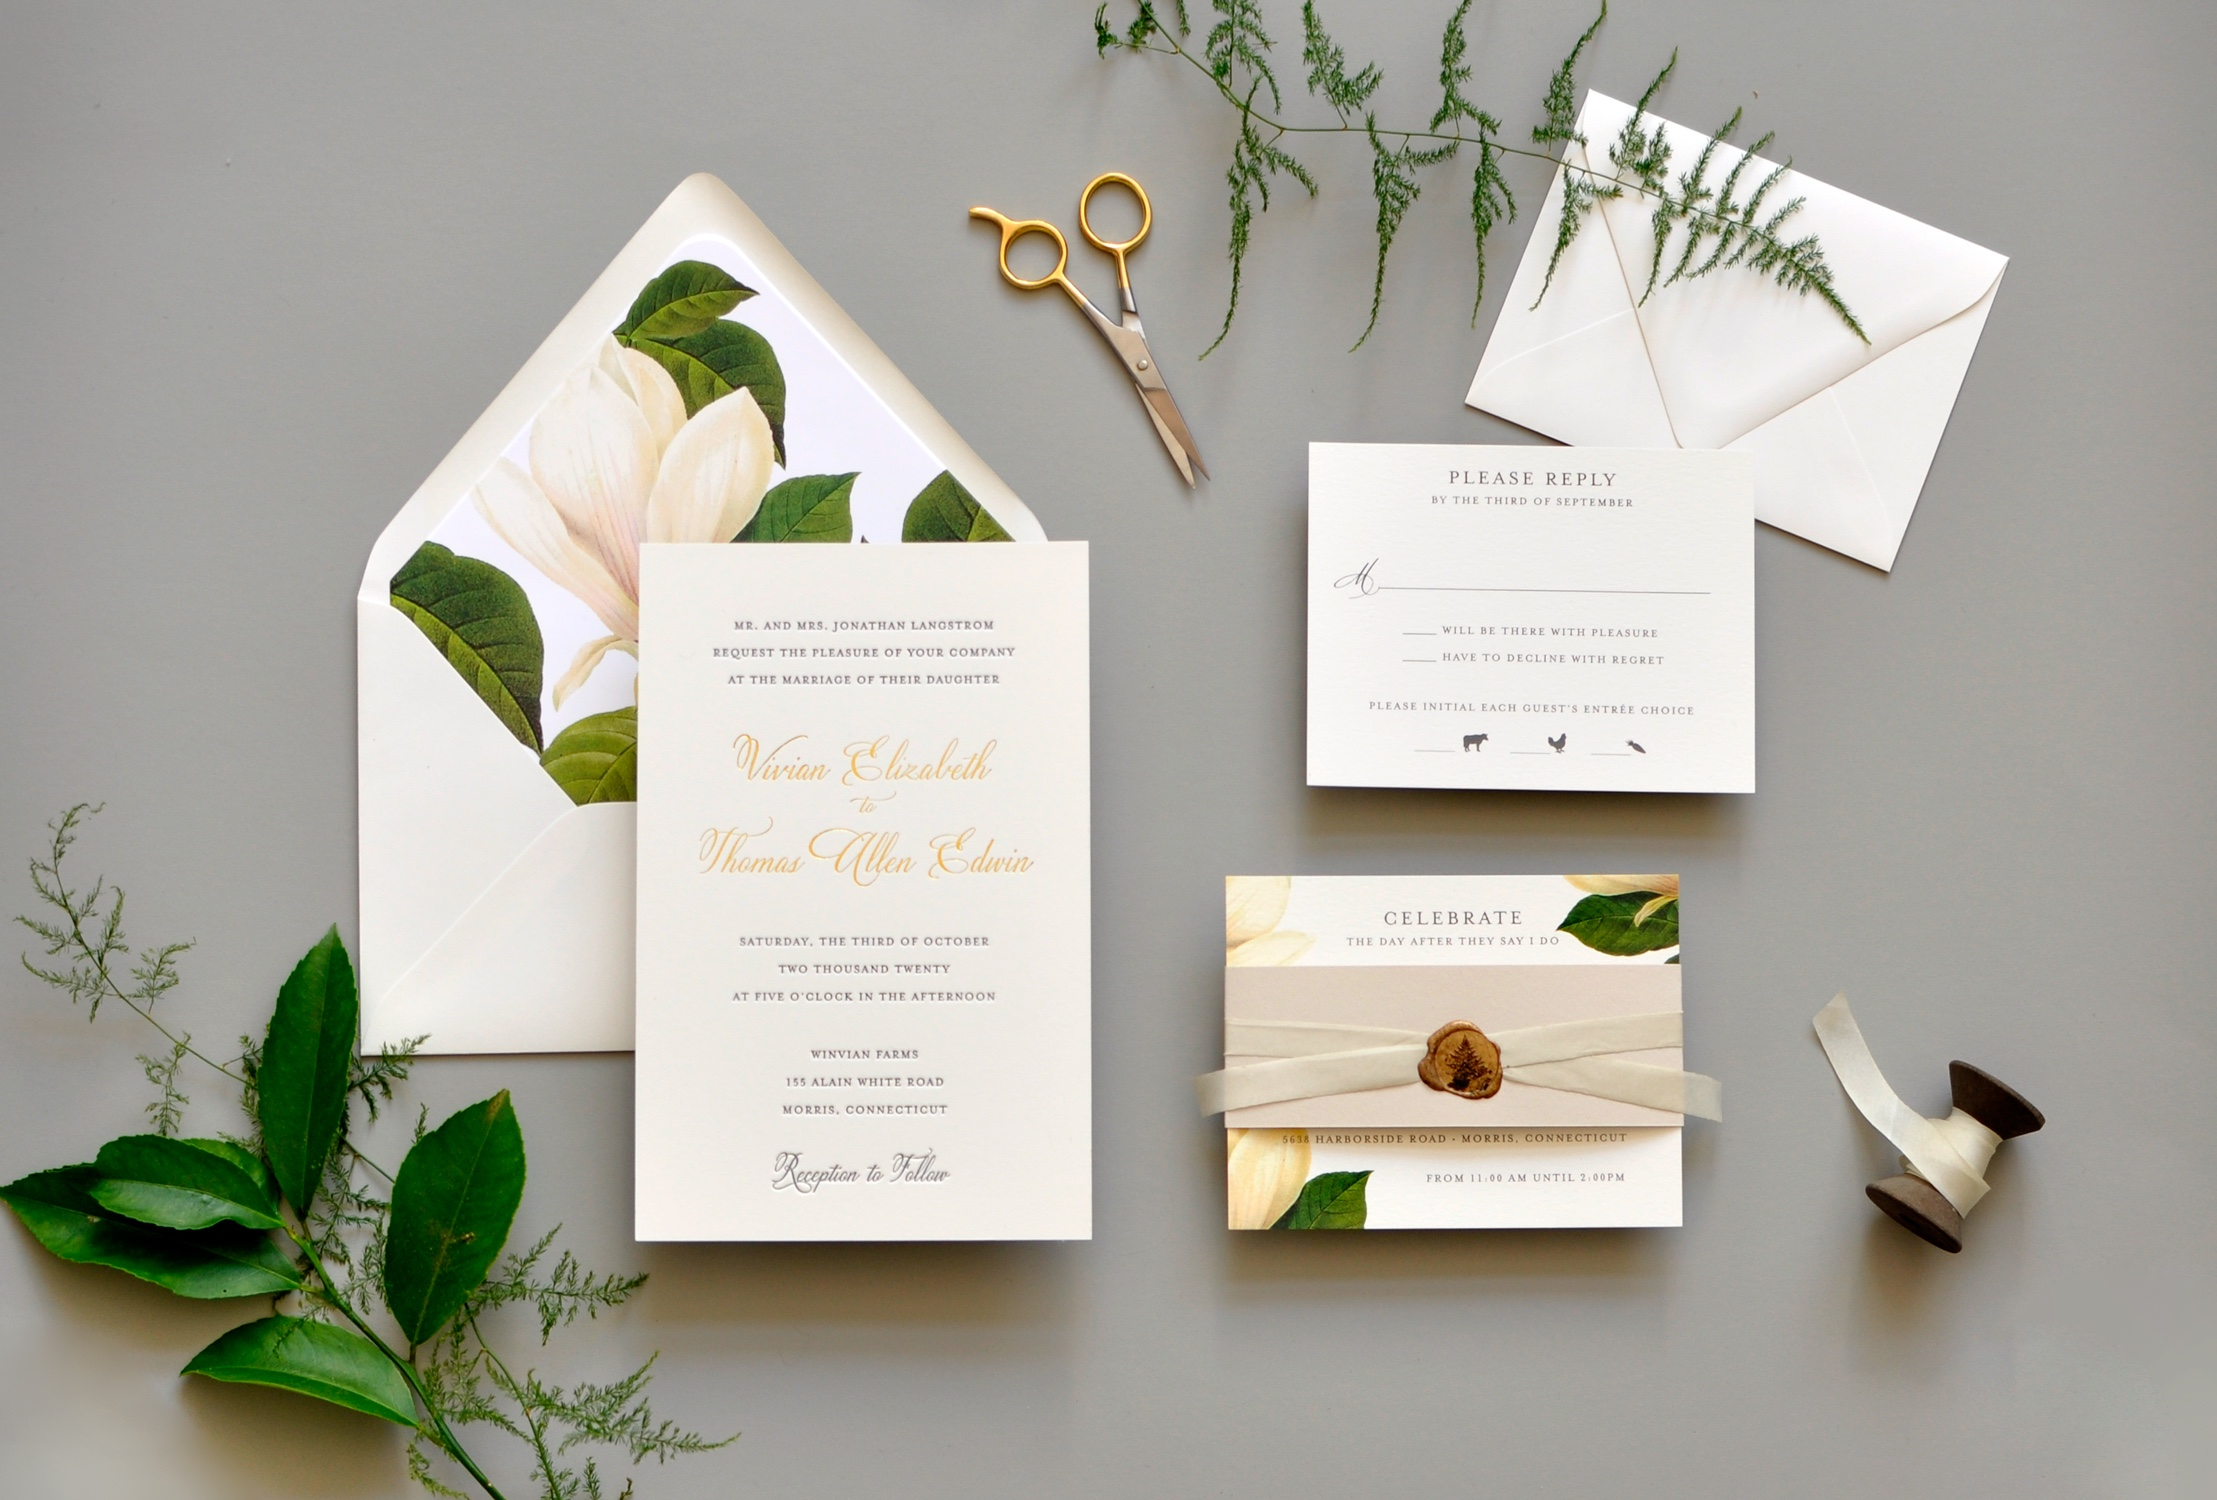 Luxury Letterpress Wedding Invitations in DC, MD, and VA.  Gold foil accents, magnolia envelope liner.